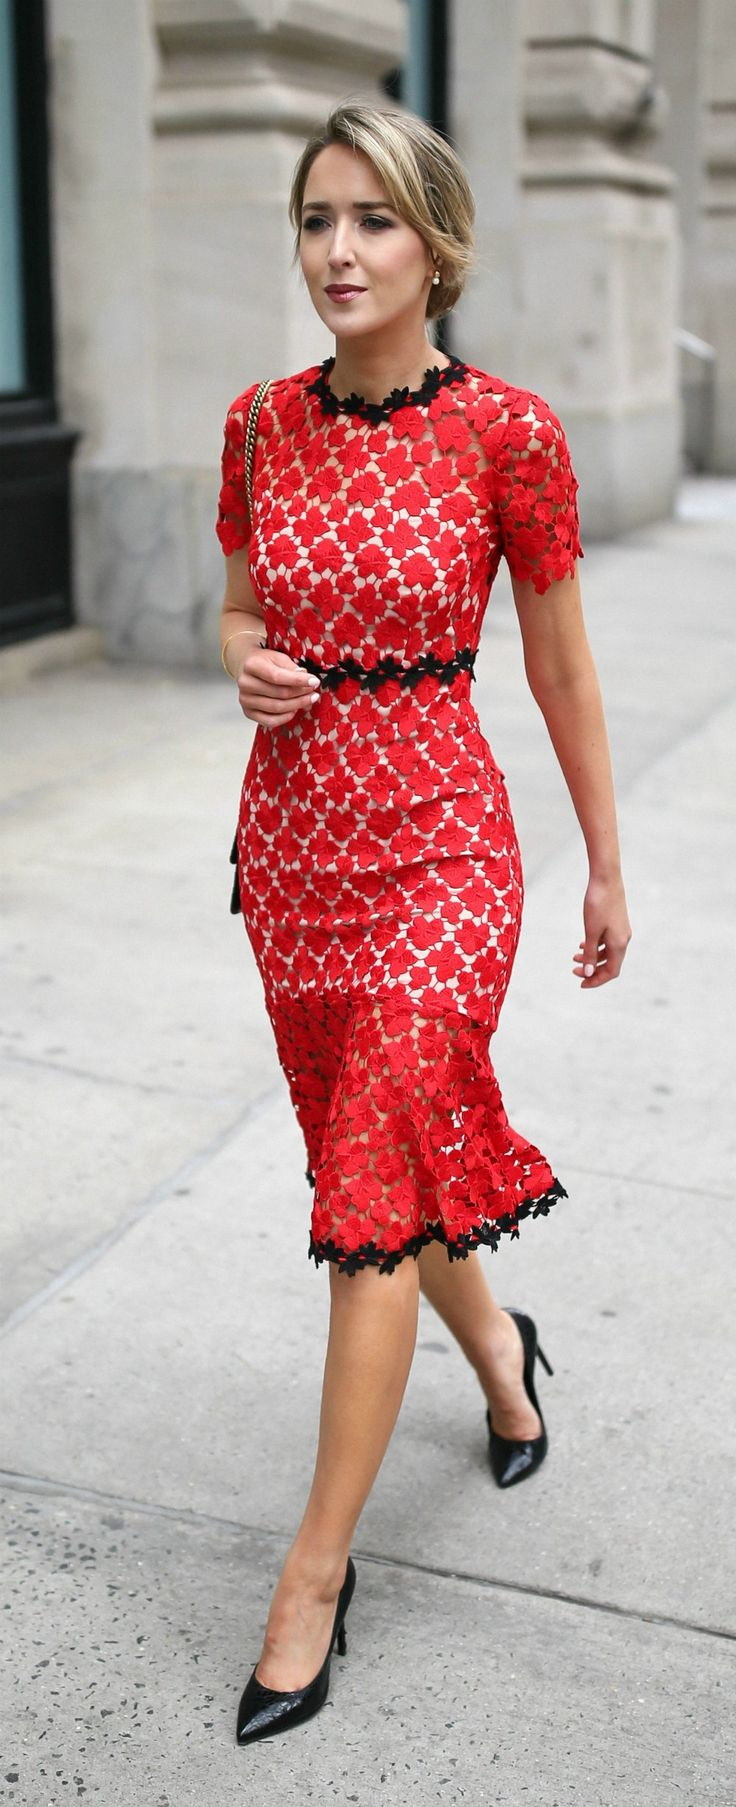 what to wear to a wedding // cocktail attire wedding guest // red lace fit and flare sheath trumpet dress with black lace piping at waist, neckline and hem // open cut-out back and short sleeves midi dress